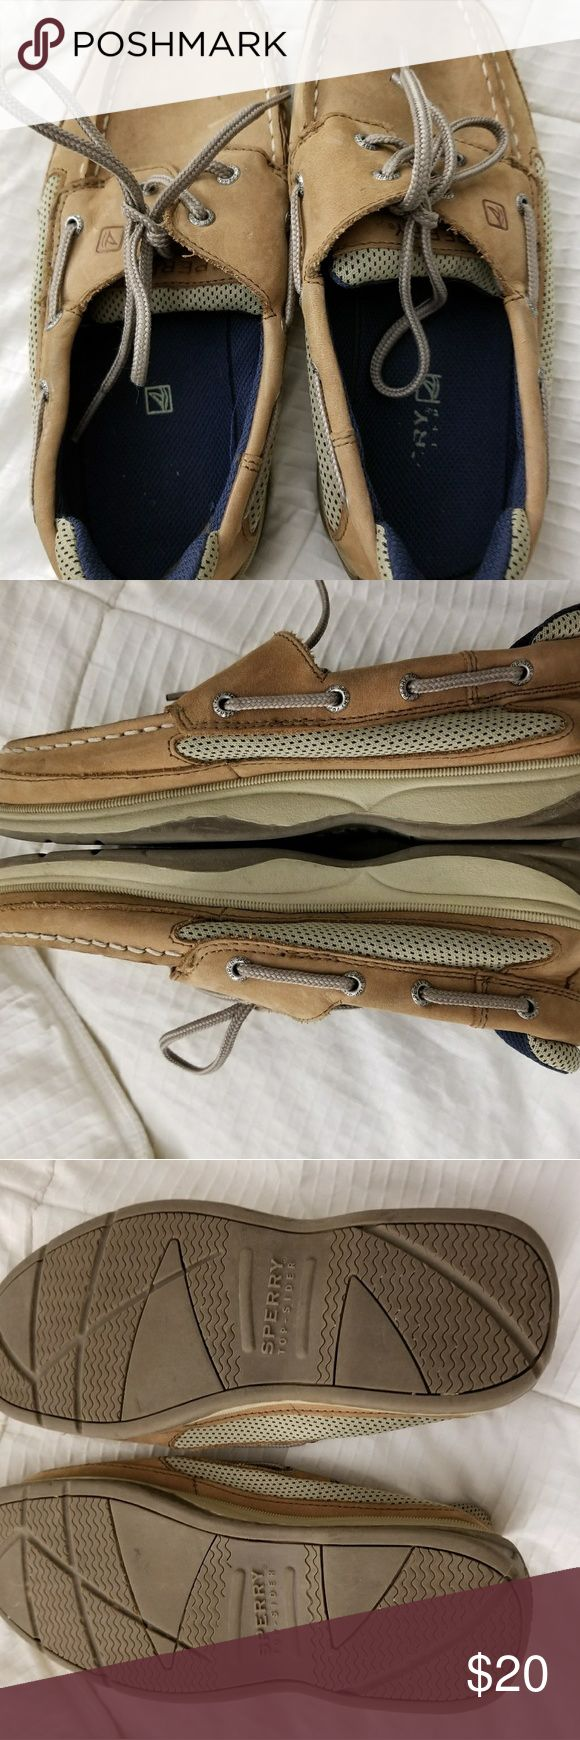 Boys Sperry Topsiders Gently used boys Sperry Topsiders. Sperry Shoes Moccasins